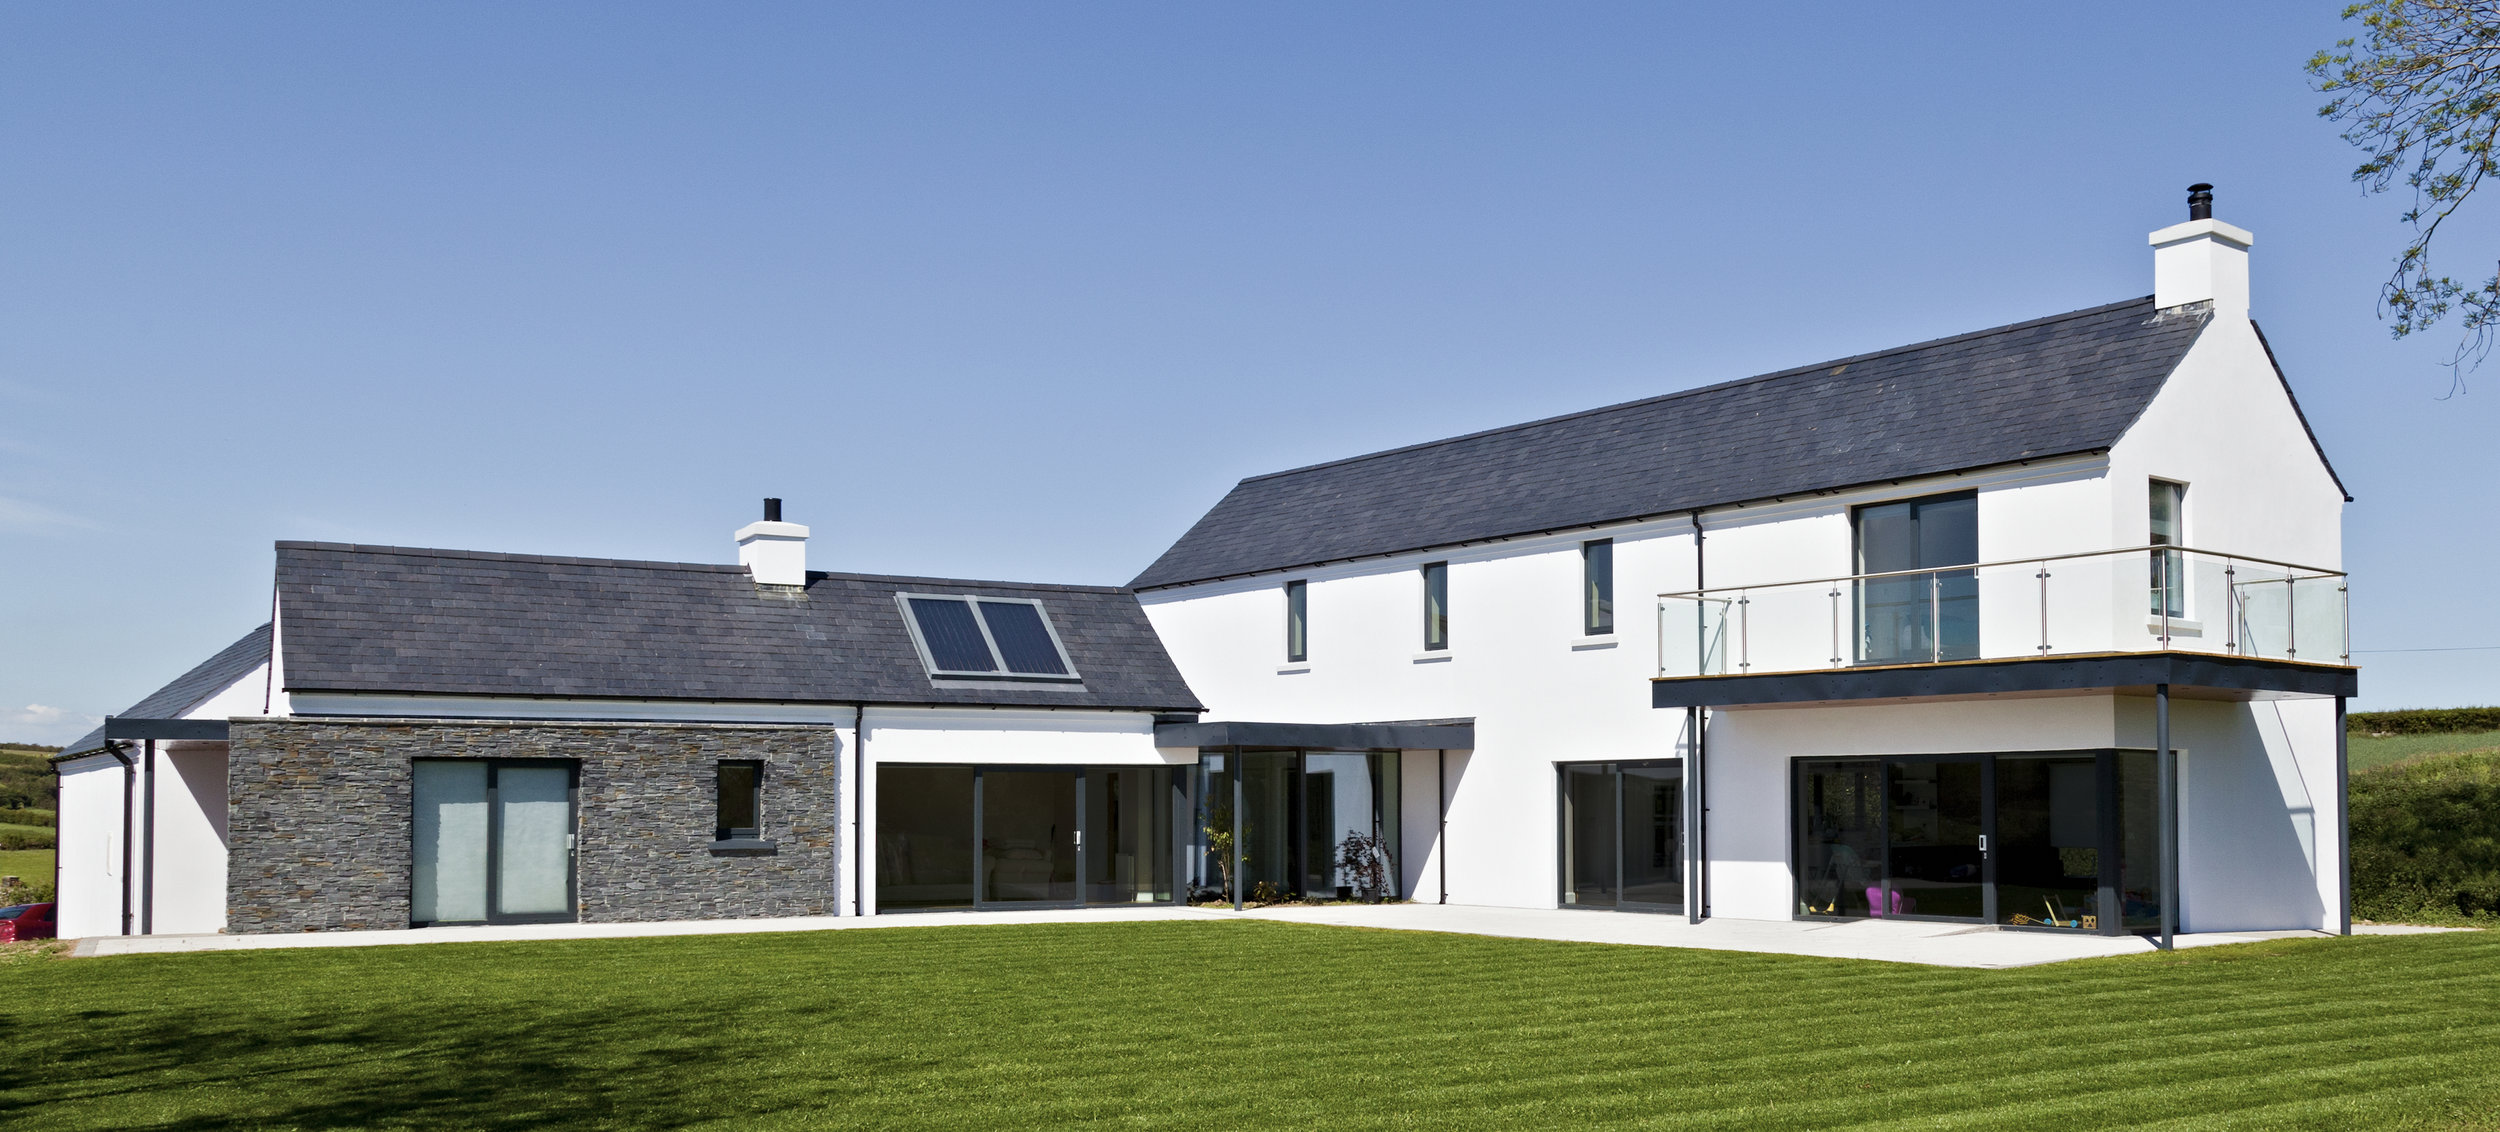 Paul McAlister Architects Drumlin House low carbon home designed to Passive House principles